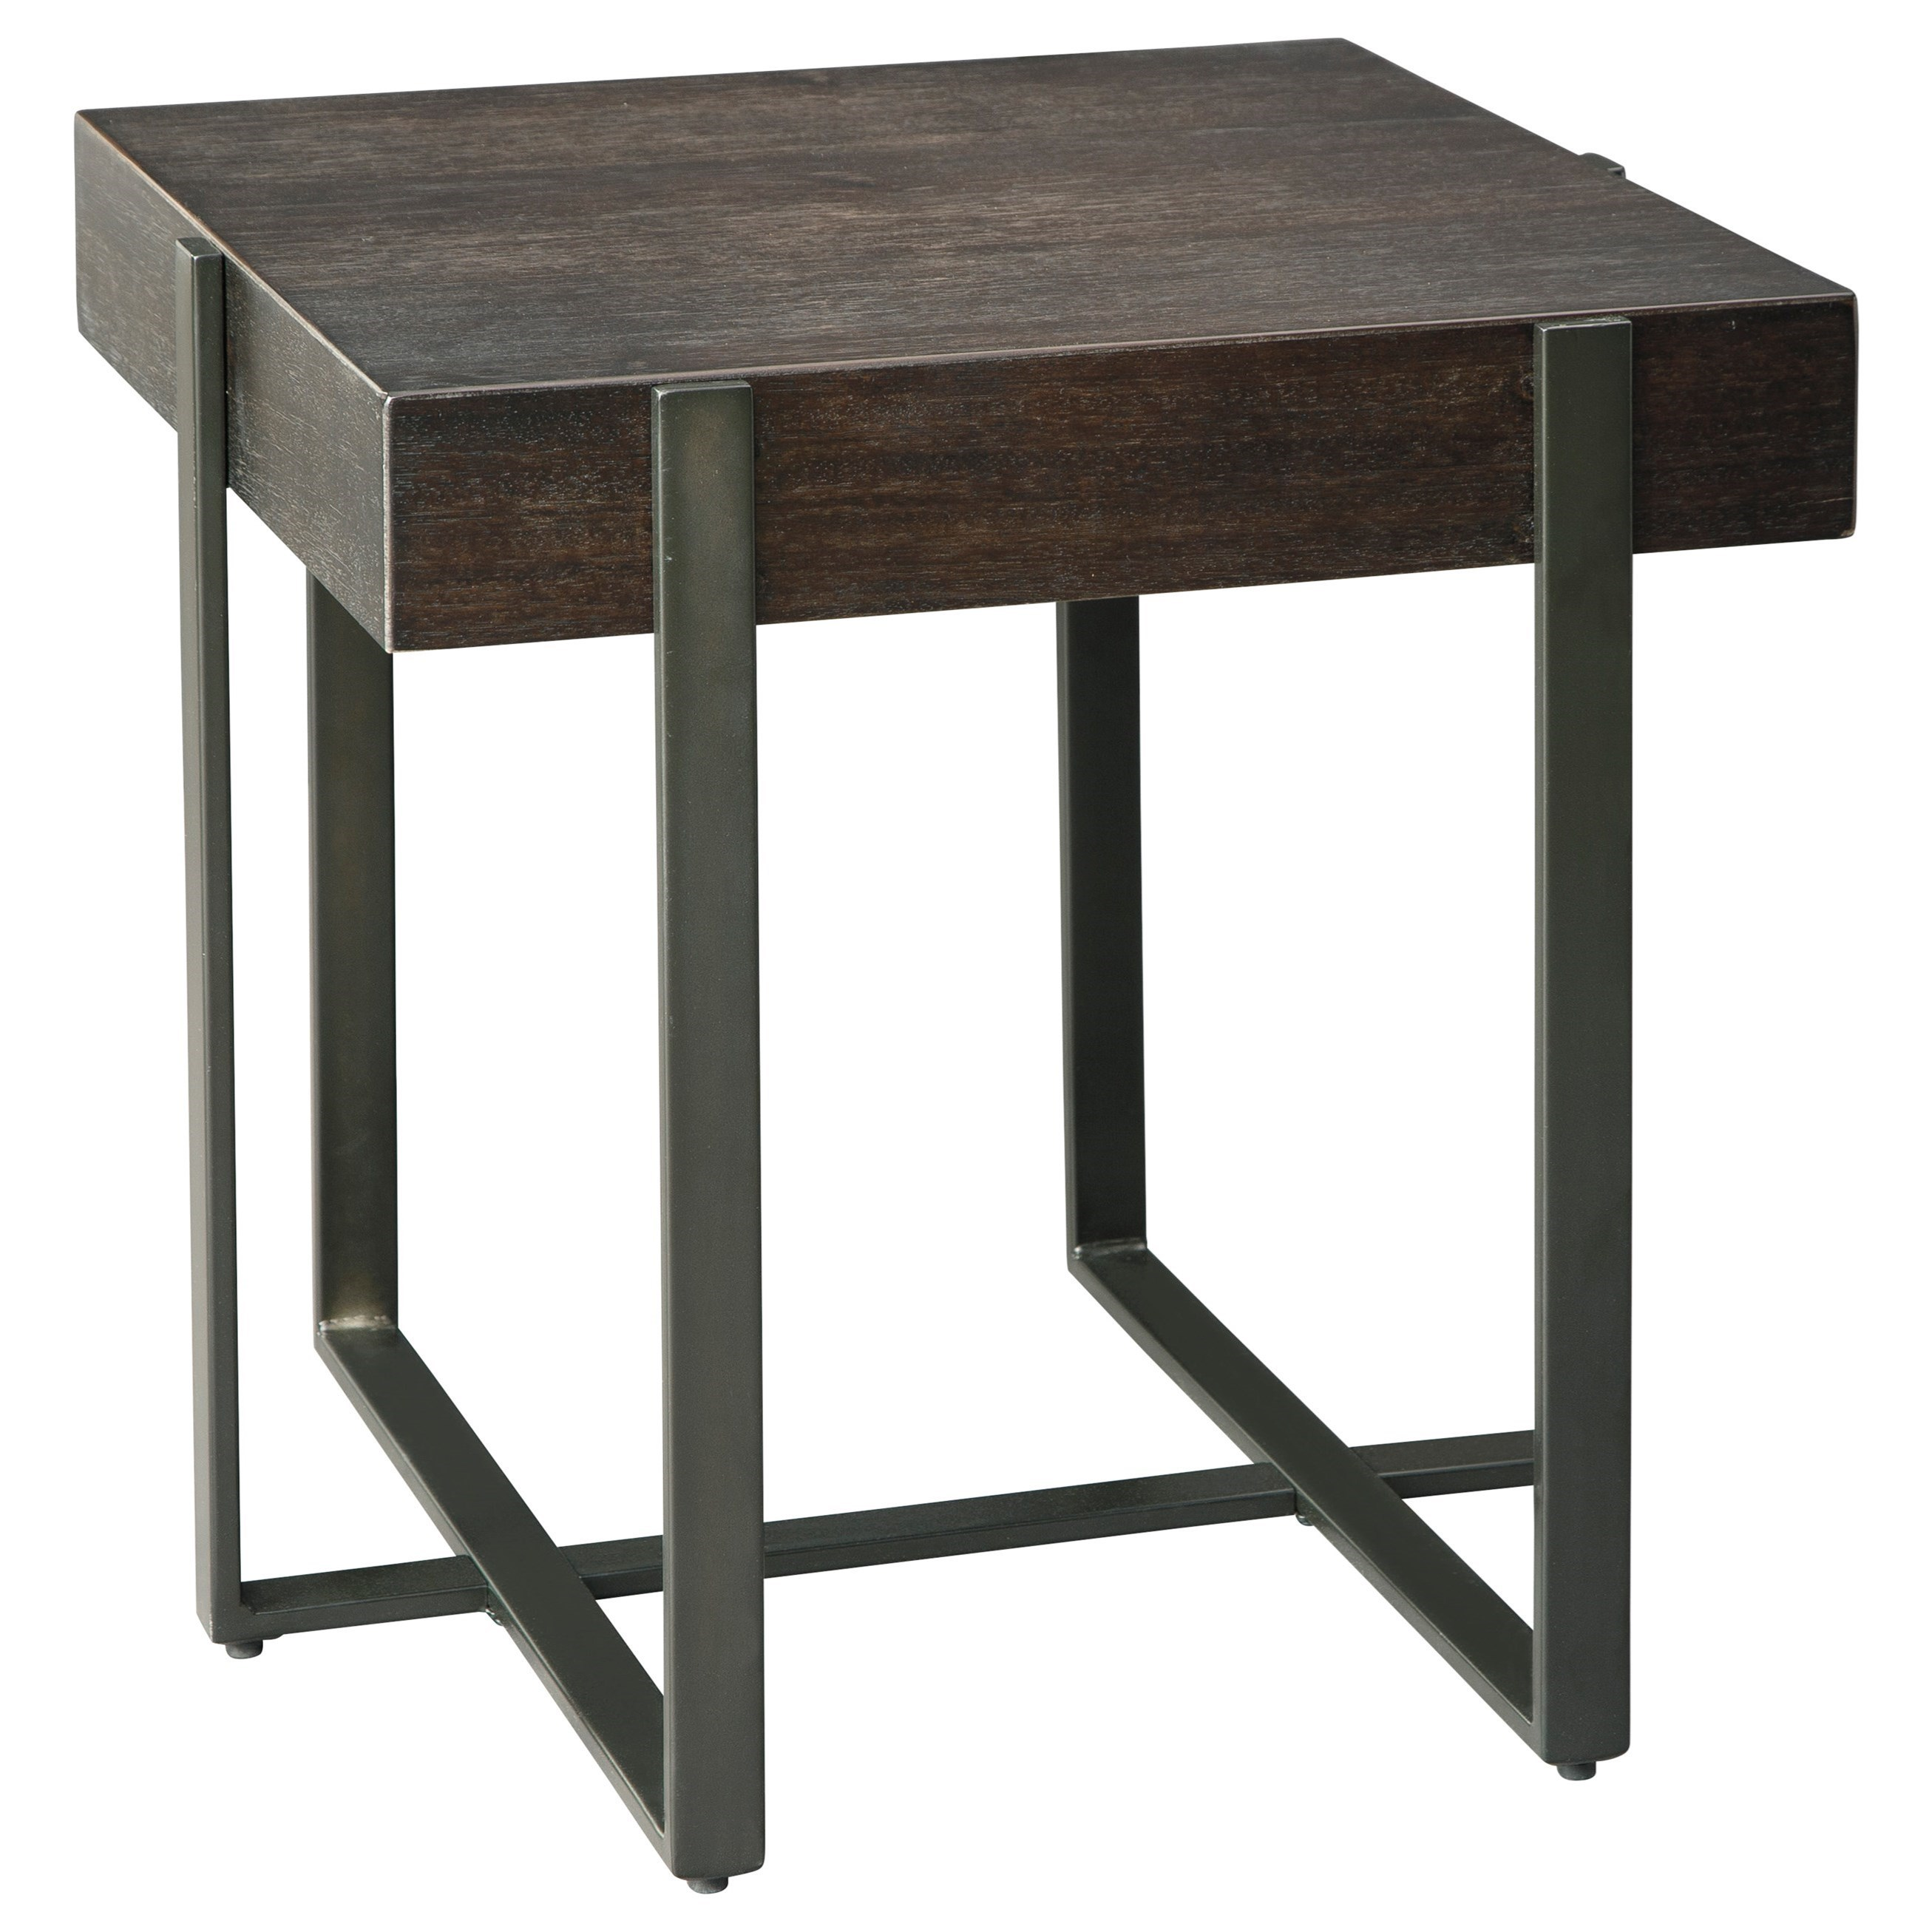 Drewing Square End Table by Ashley (Signature Design) at Johnny Janosik